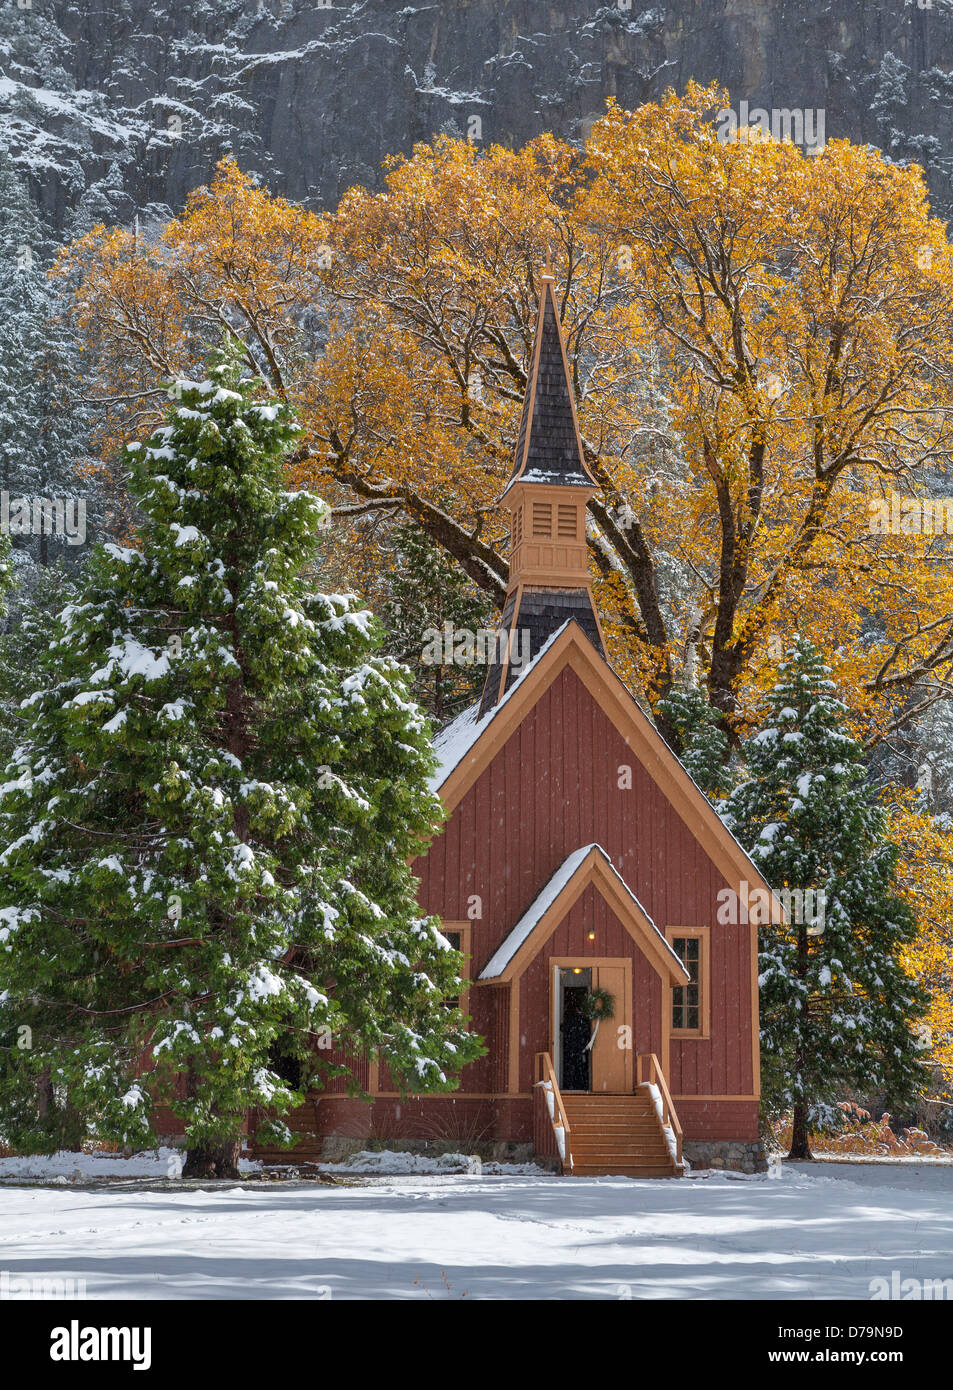 Yosemite National Park, California: Yosemite Valley Chapel (1879) in falling snow. - Stock Image